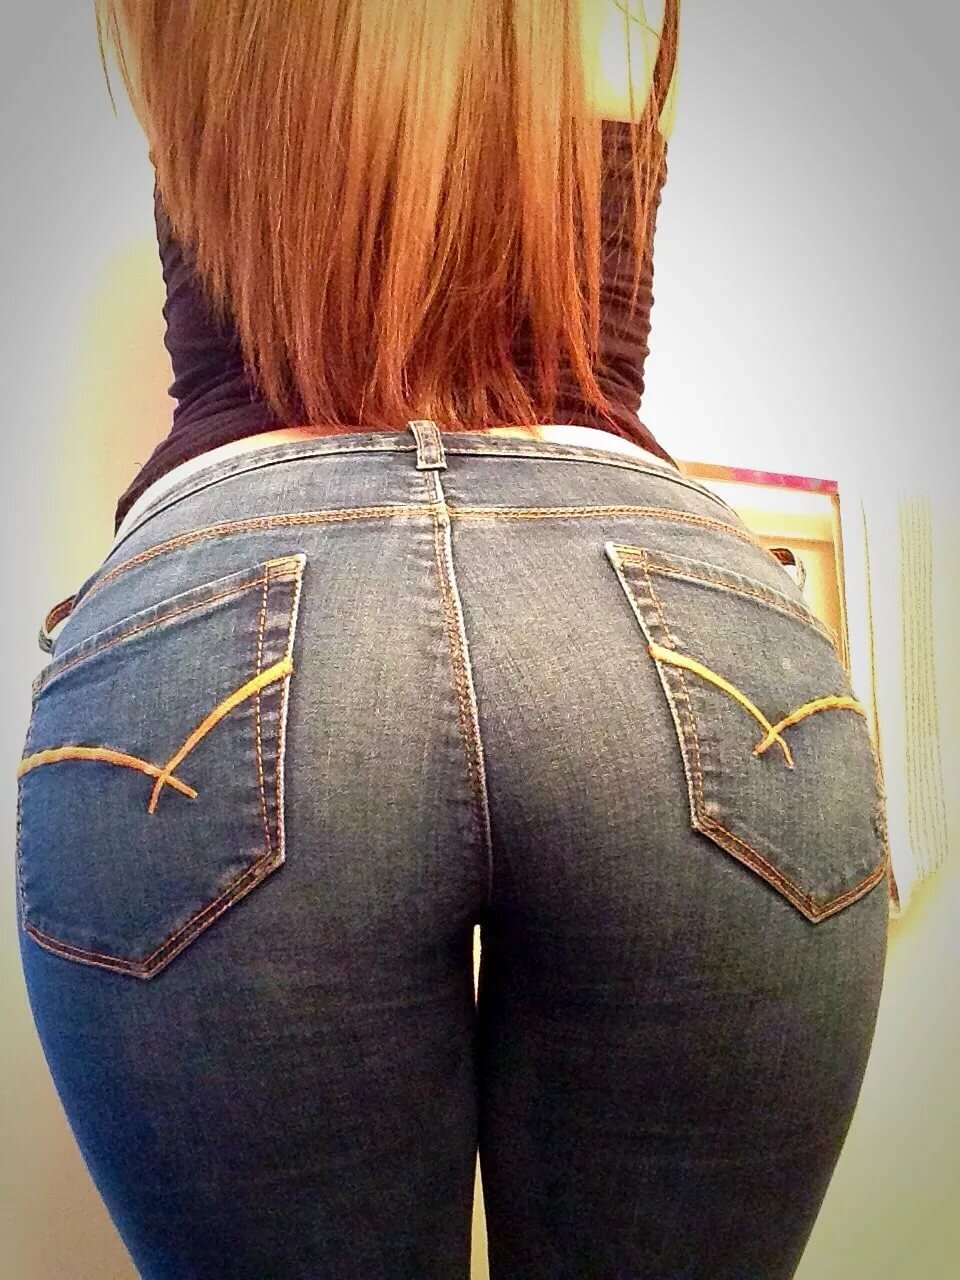 Ass jeans video — pic 2